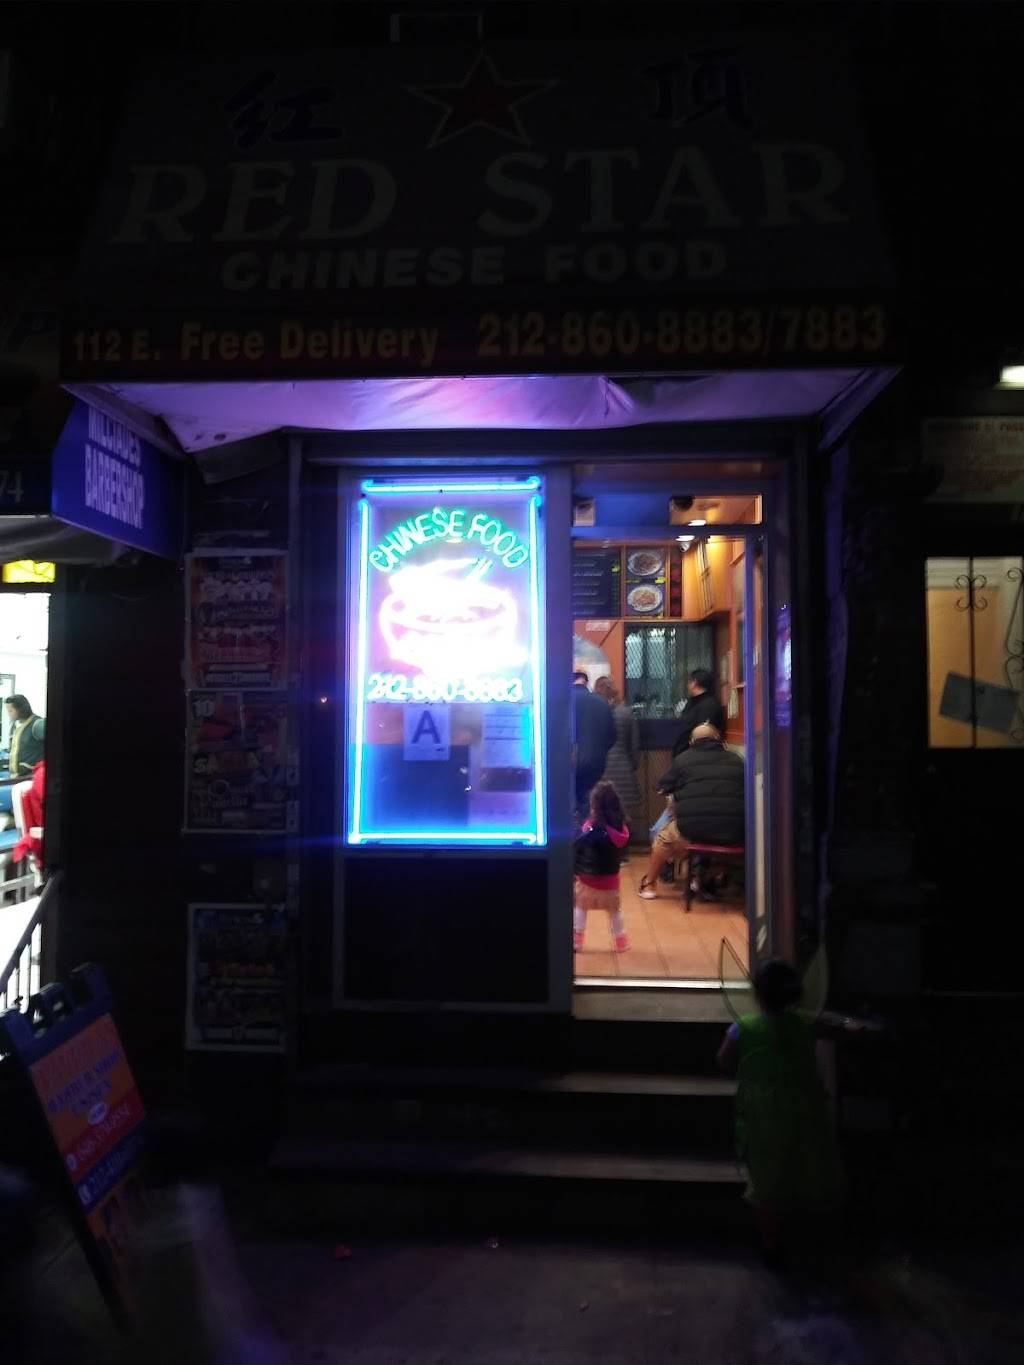 Red Star | restaurant | 112 E 116th St, New York, NY 10029, USA | 2128608883 OR +1 212-860-8883